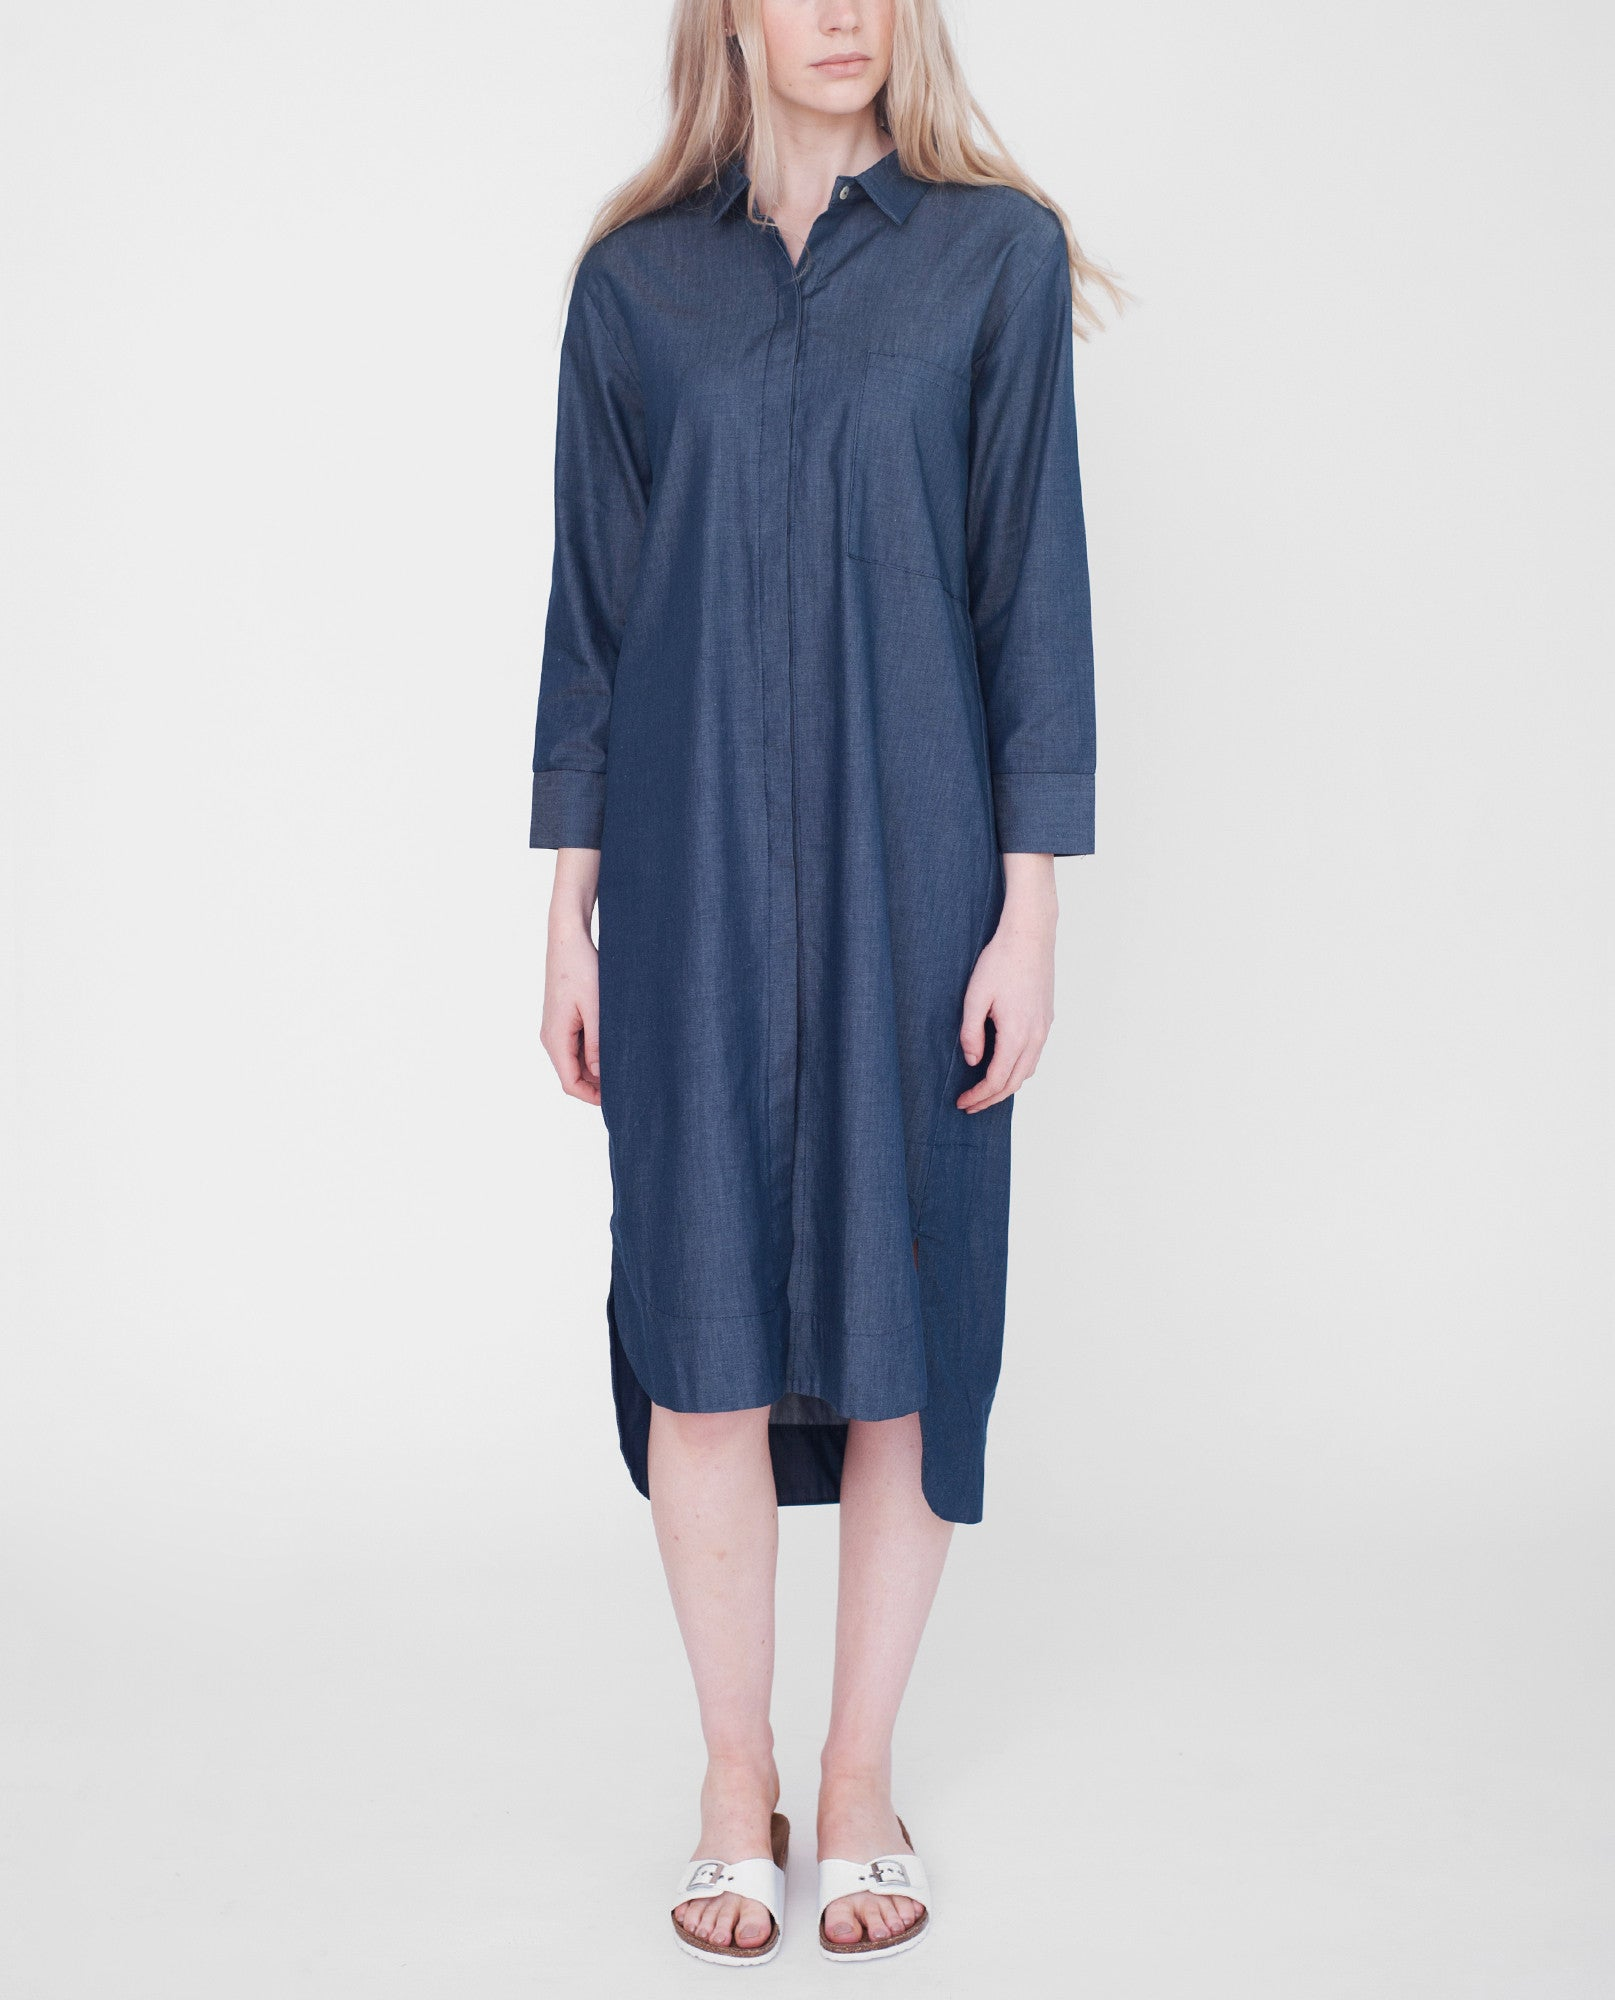 JAMILA Cotton Denim Shirt from Beaumont Organic